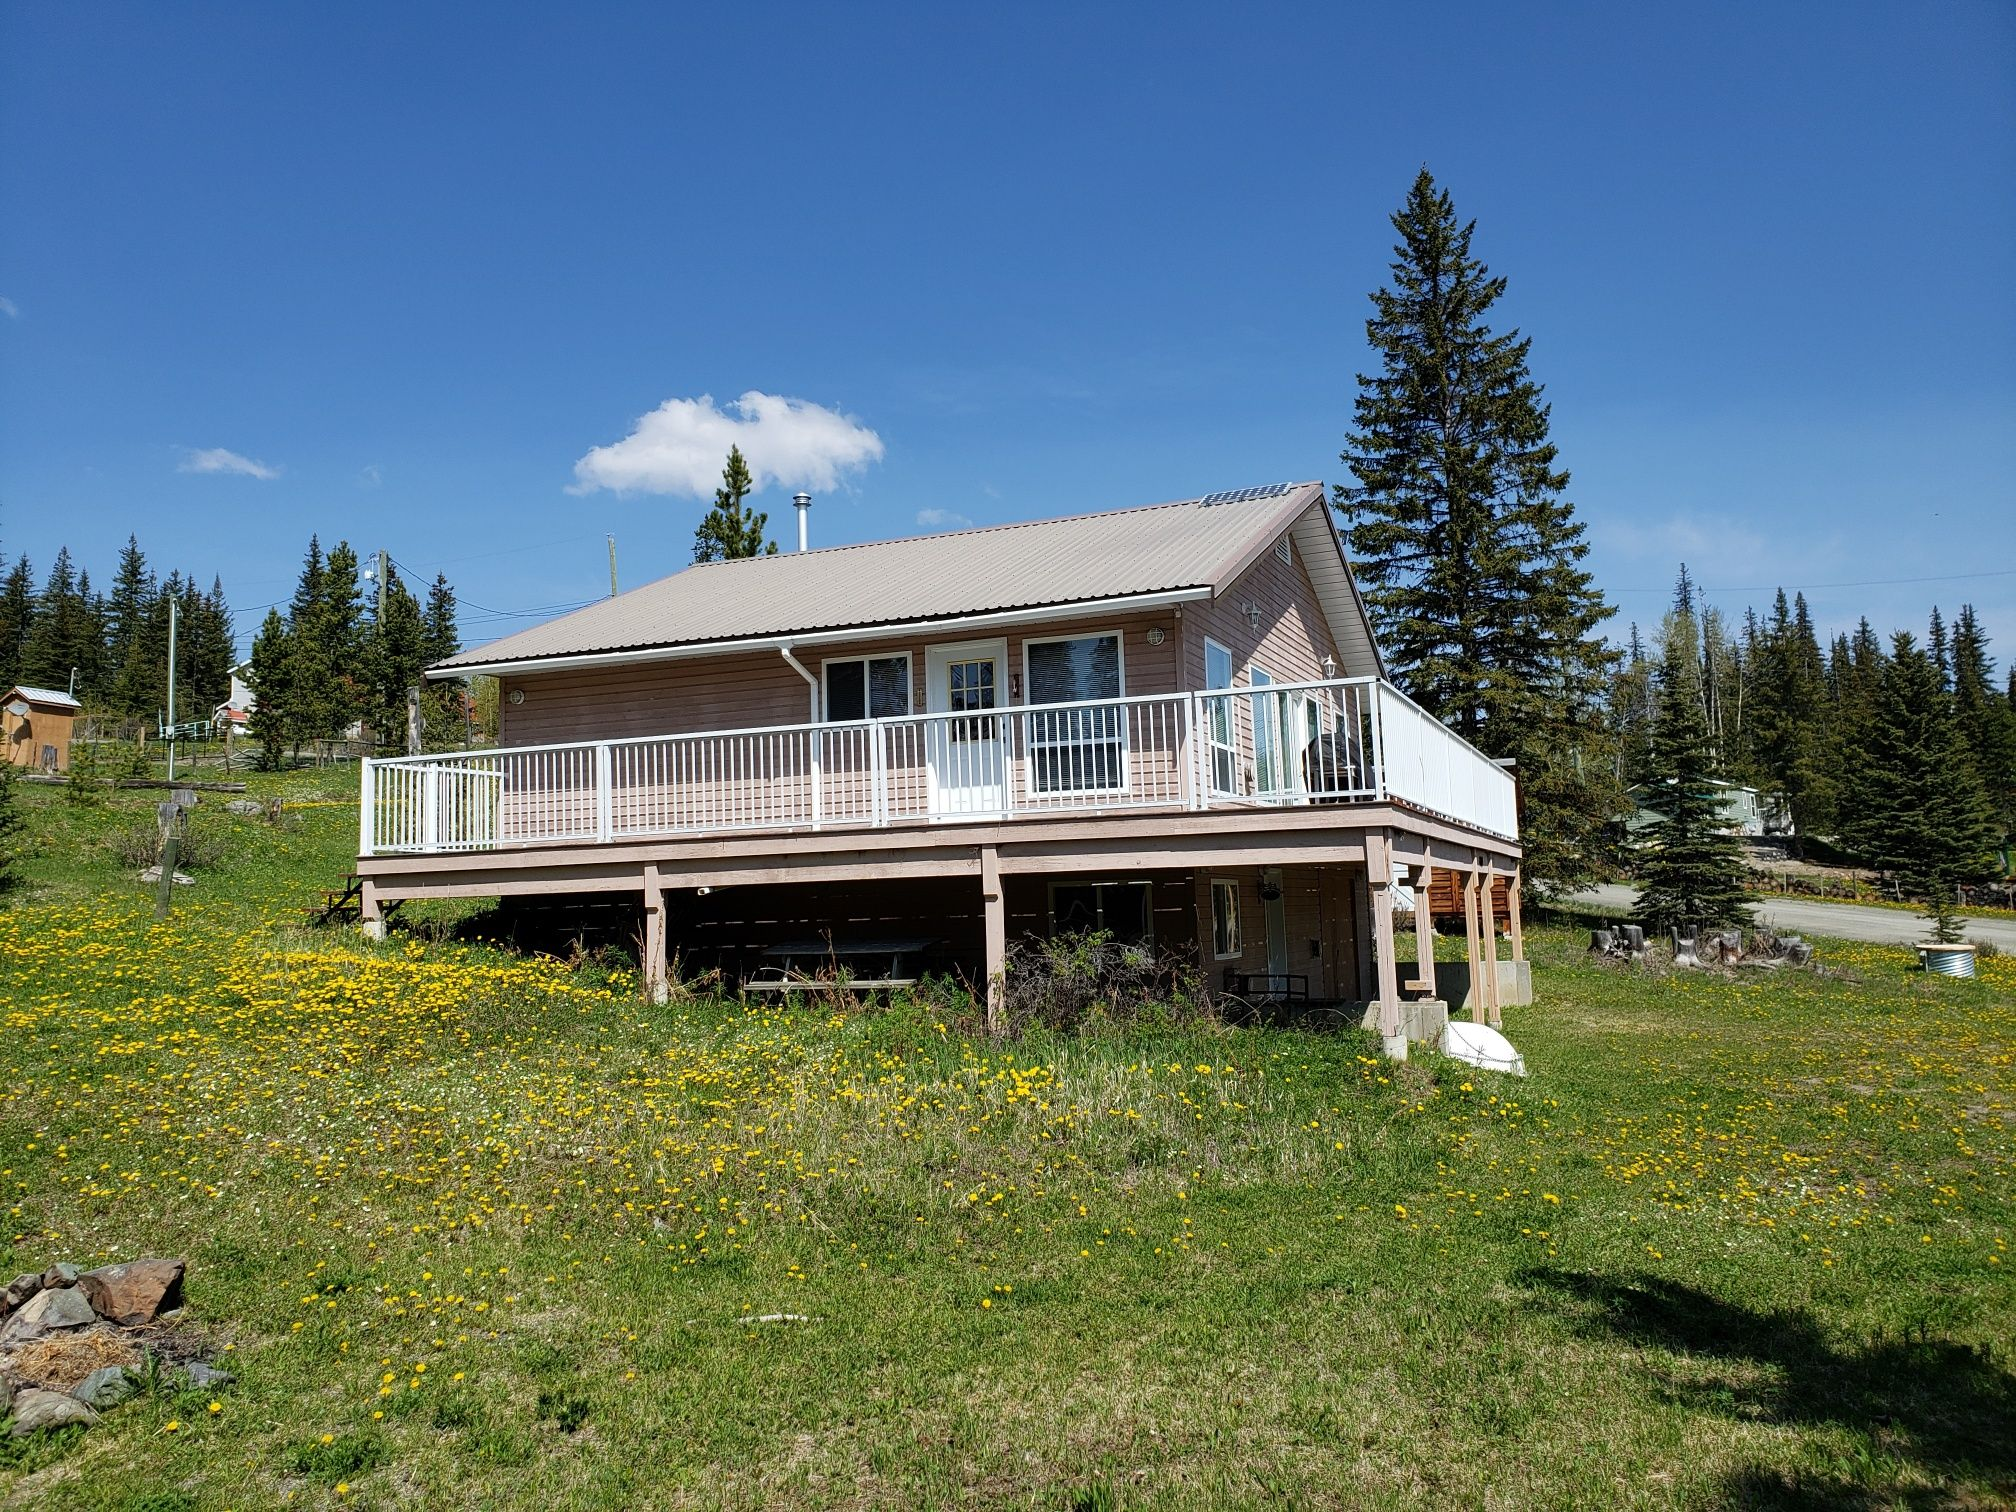 Photo 13: Photos: 4789 Atwater Road in : Logan Lake House for sale (Kamloops)  : MLS®# 157075